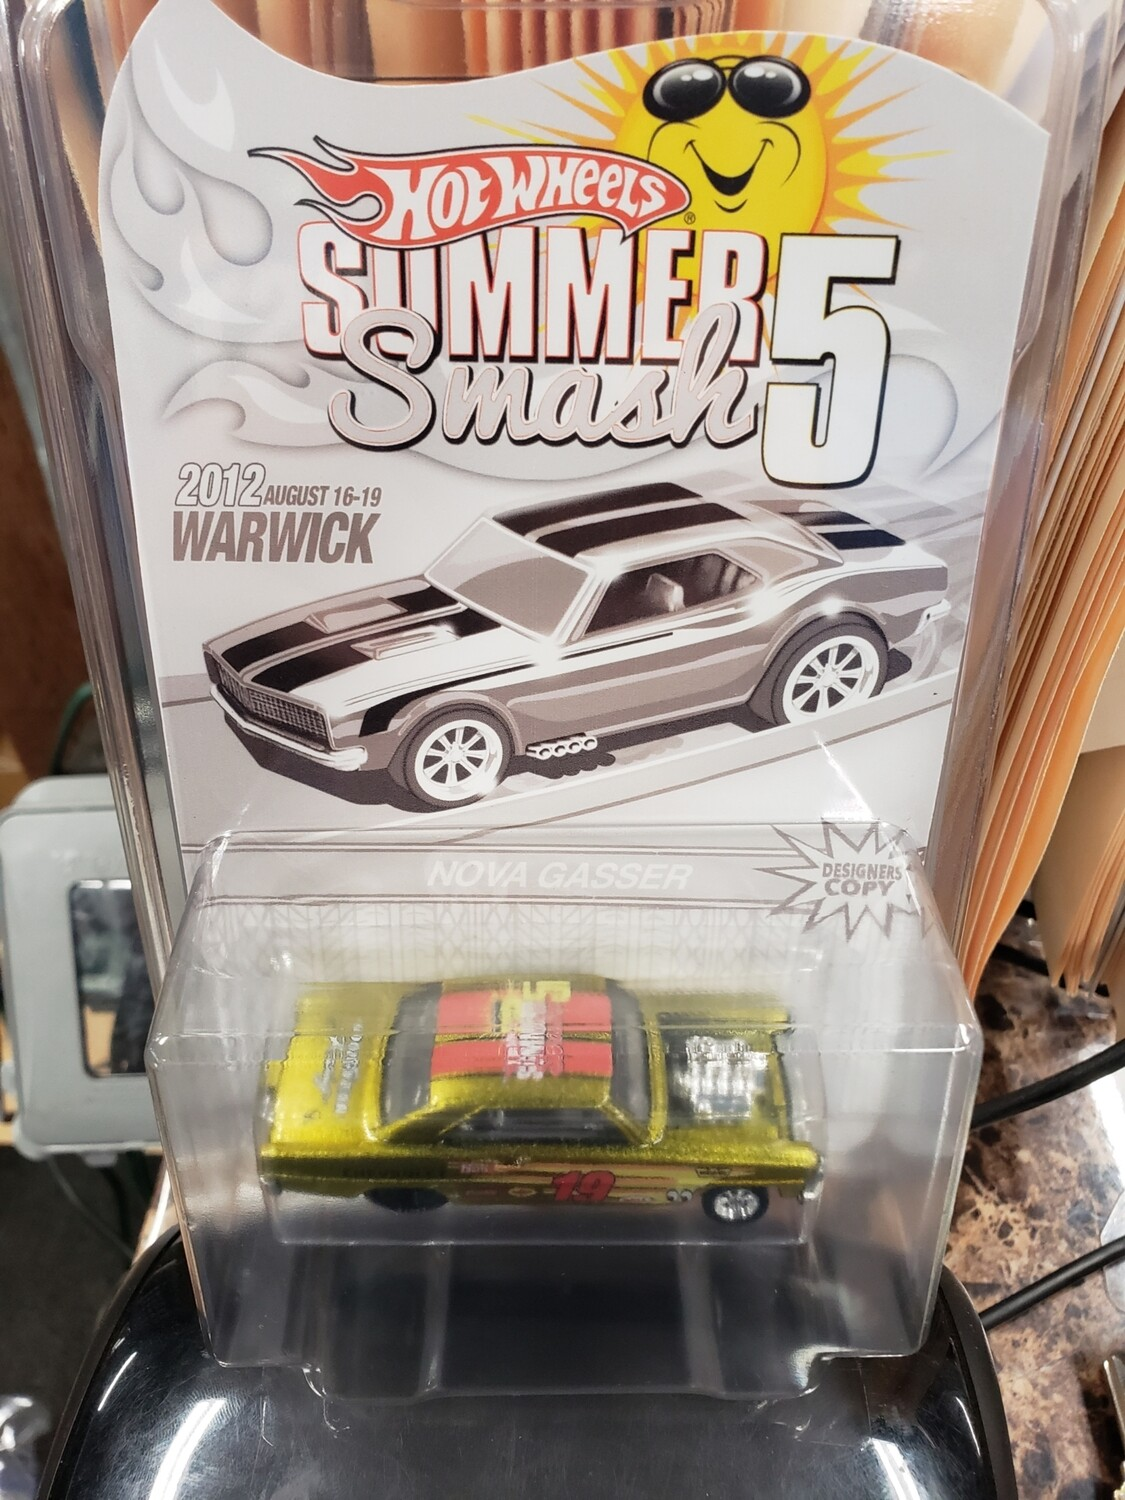 Summer Convention Series 10th Anniversary'66 Nova Gasser - Hot Wheels Summer Smash